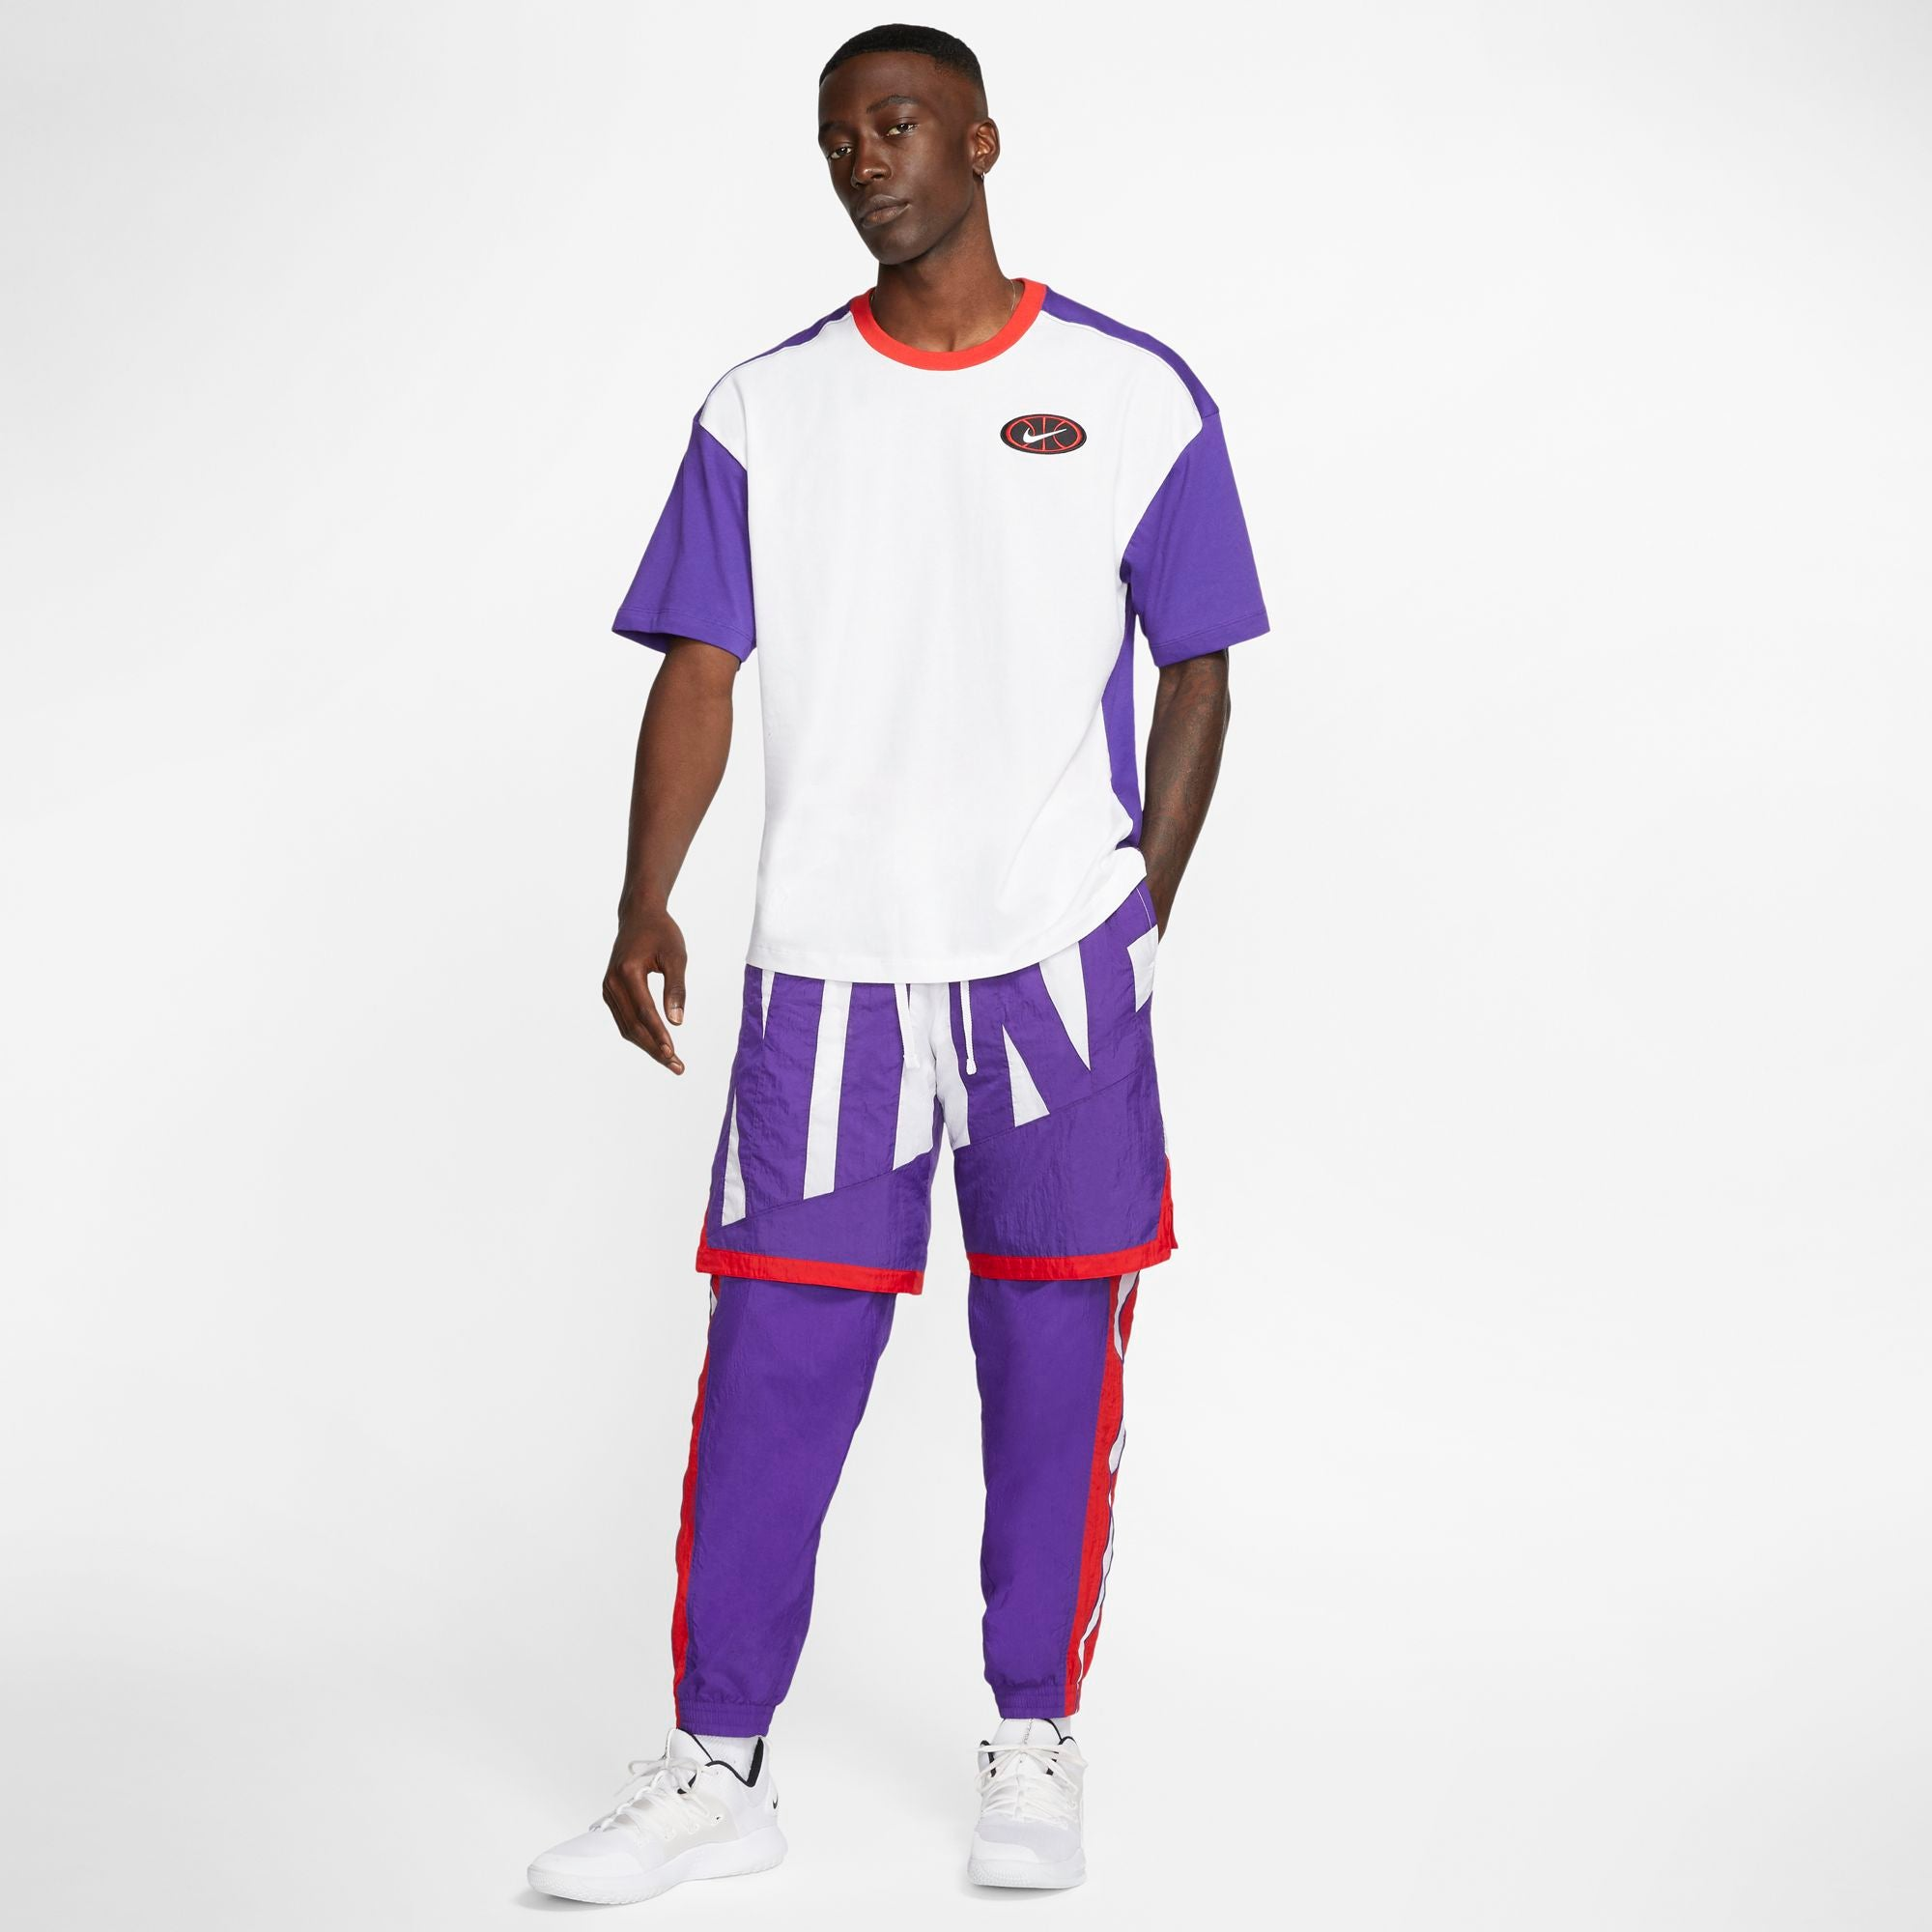 Nike Basketball Throwback 2.1 Tee - White/Court Purple/University Red